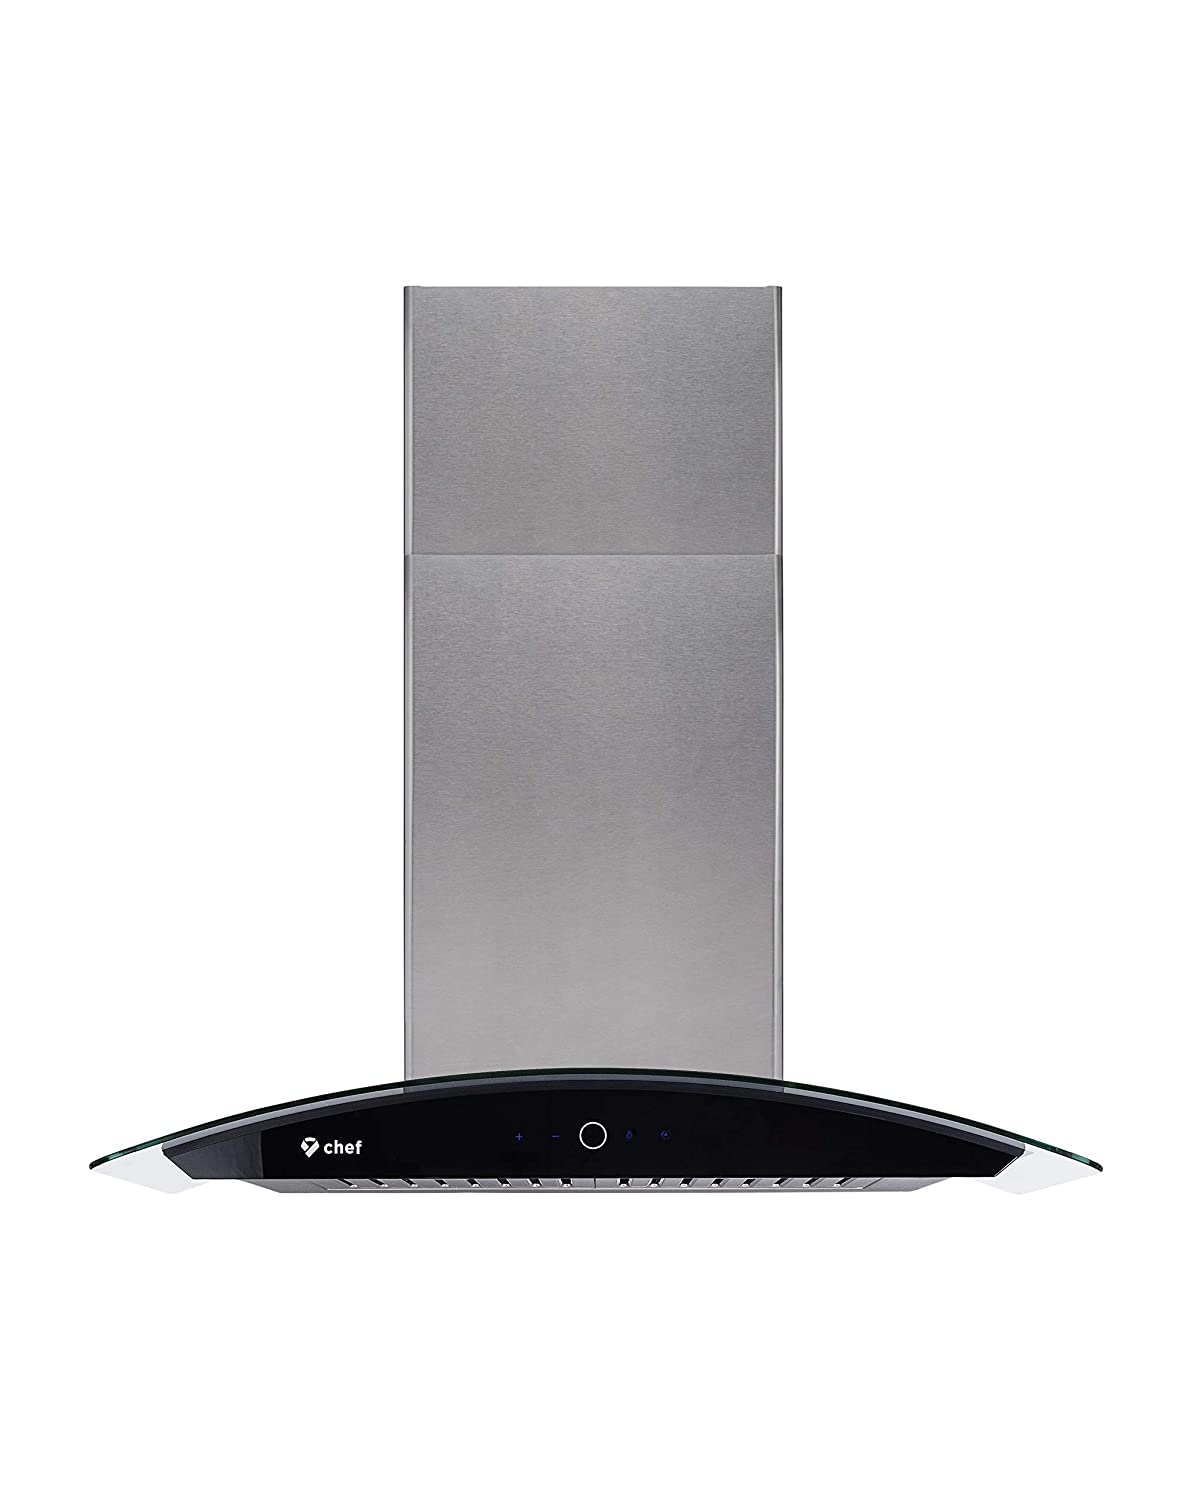 Dishwasher Safe Baffle Filters Touch Control Panel 3 Speed Settings Contemporary Design w// 900 CFM 36 Chef WM-639 Wall Mounted Range Hood Tempered Glass and Stainless Steel